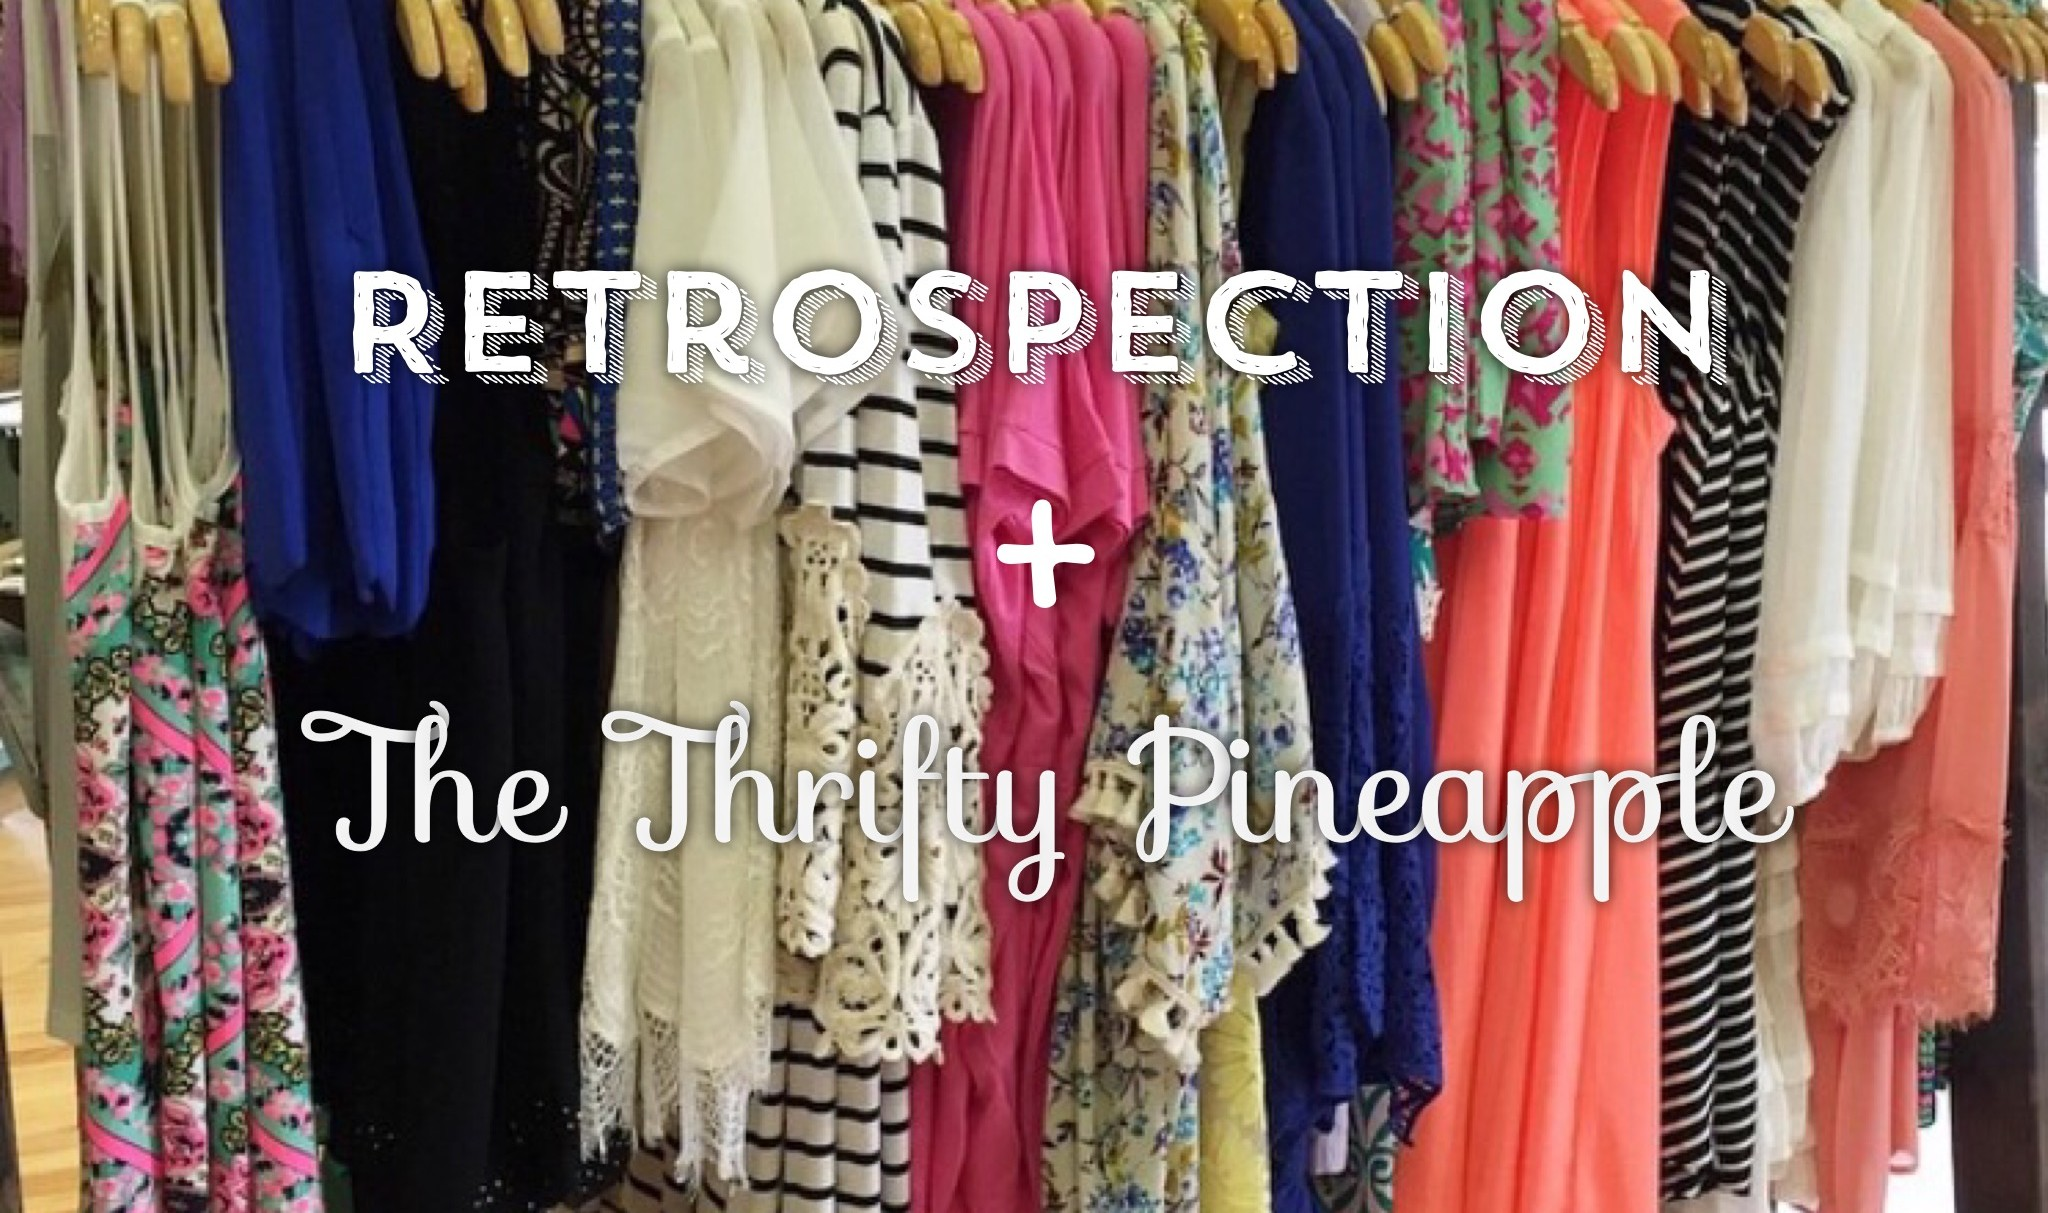 Retrospection + The Thrifty Pineapple